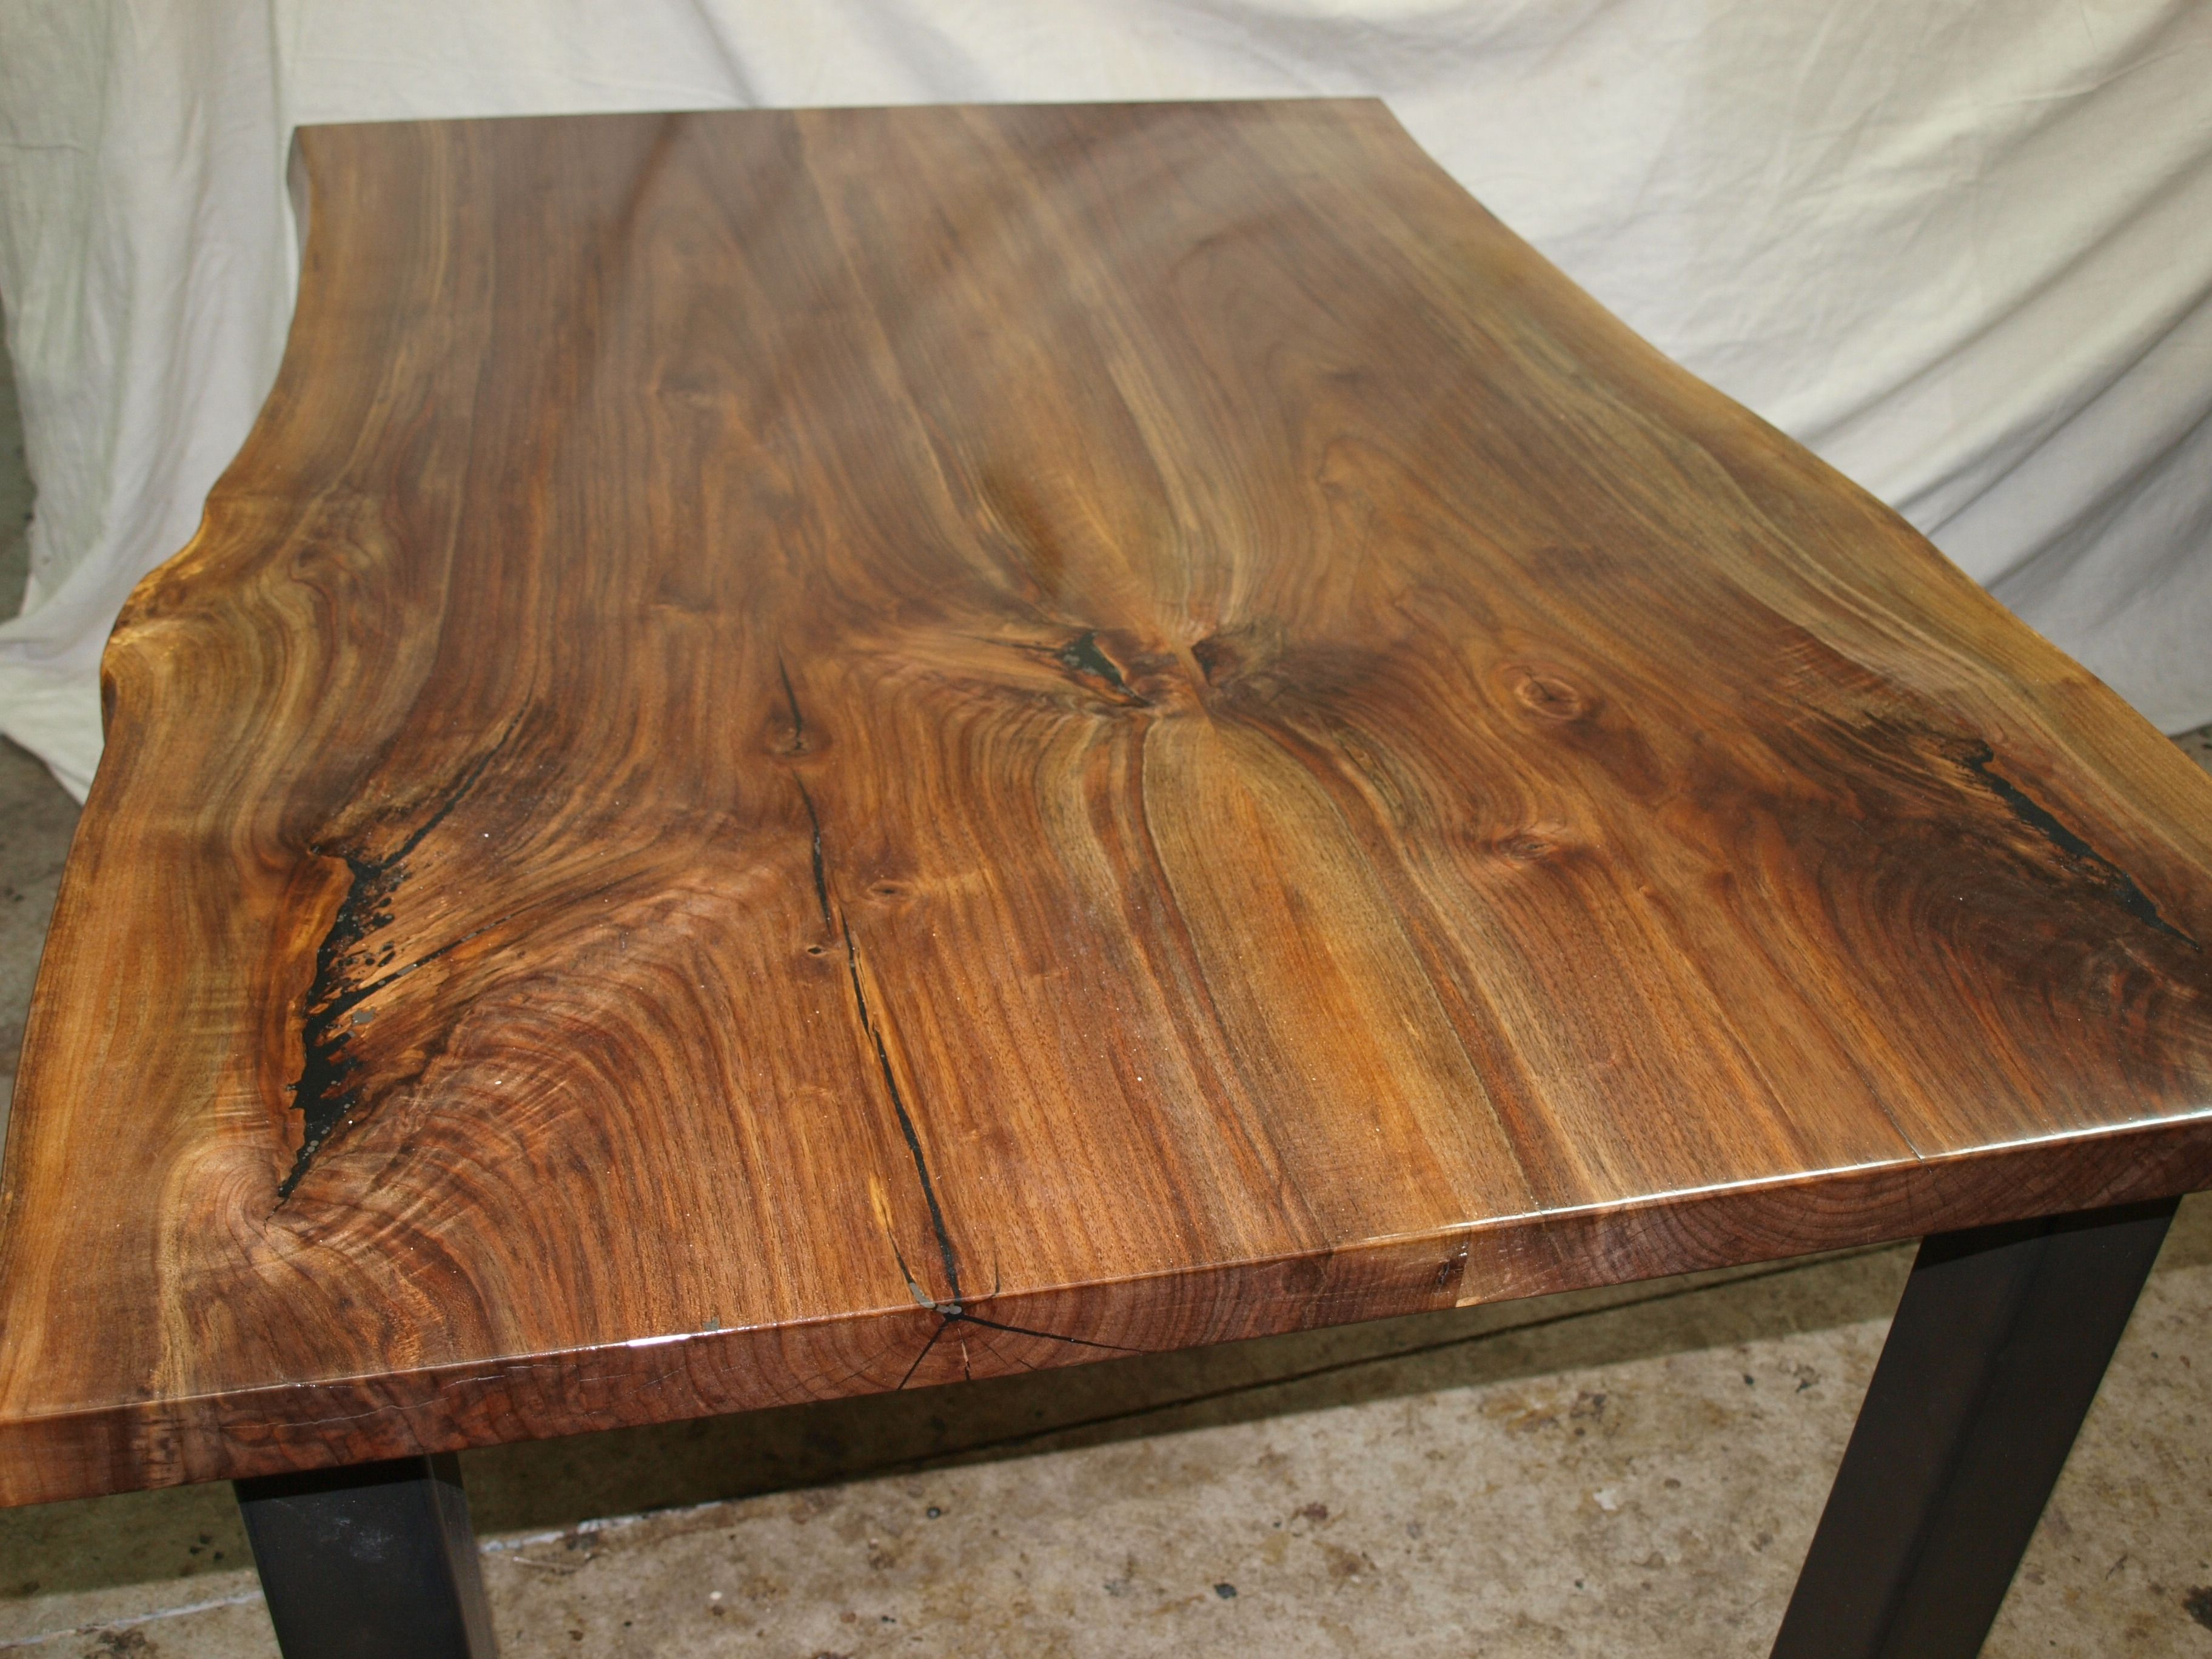 Custom Live Edge Walnut Table By Witness Tree Studios